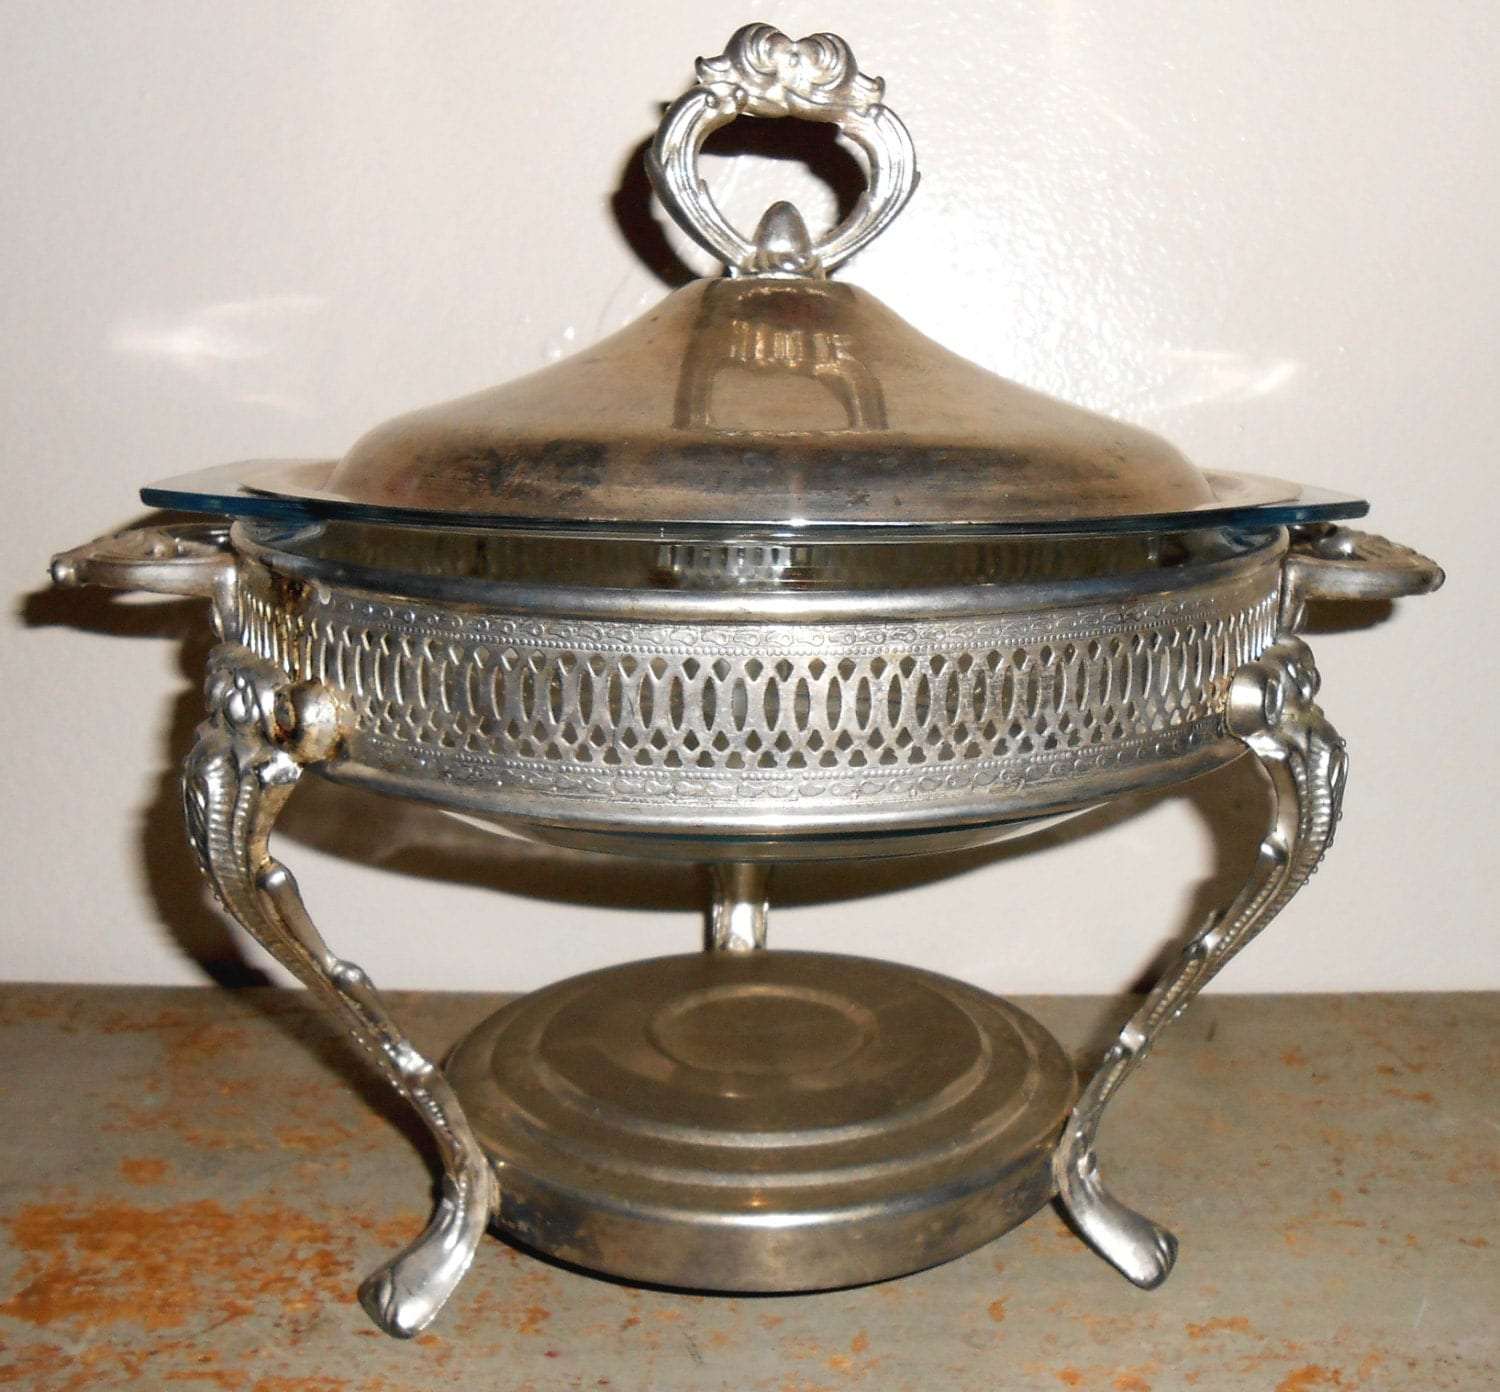 Vintage Chafing Dish Silver Ornate Bowl Lid Stand By